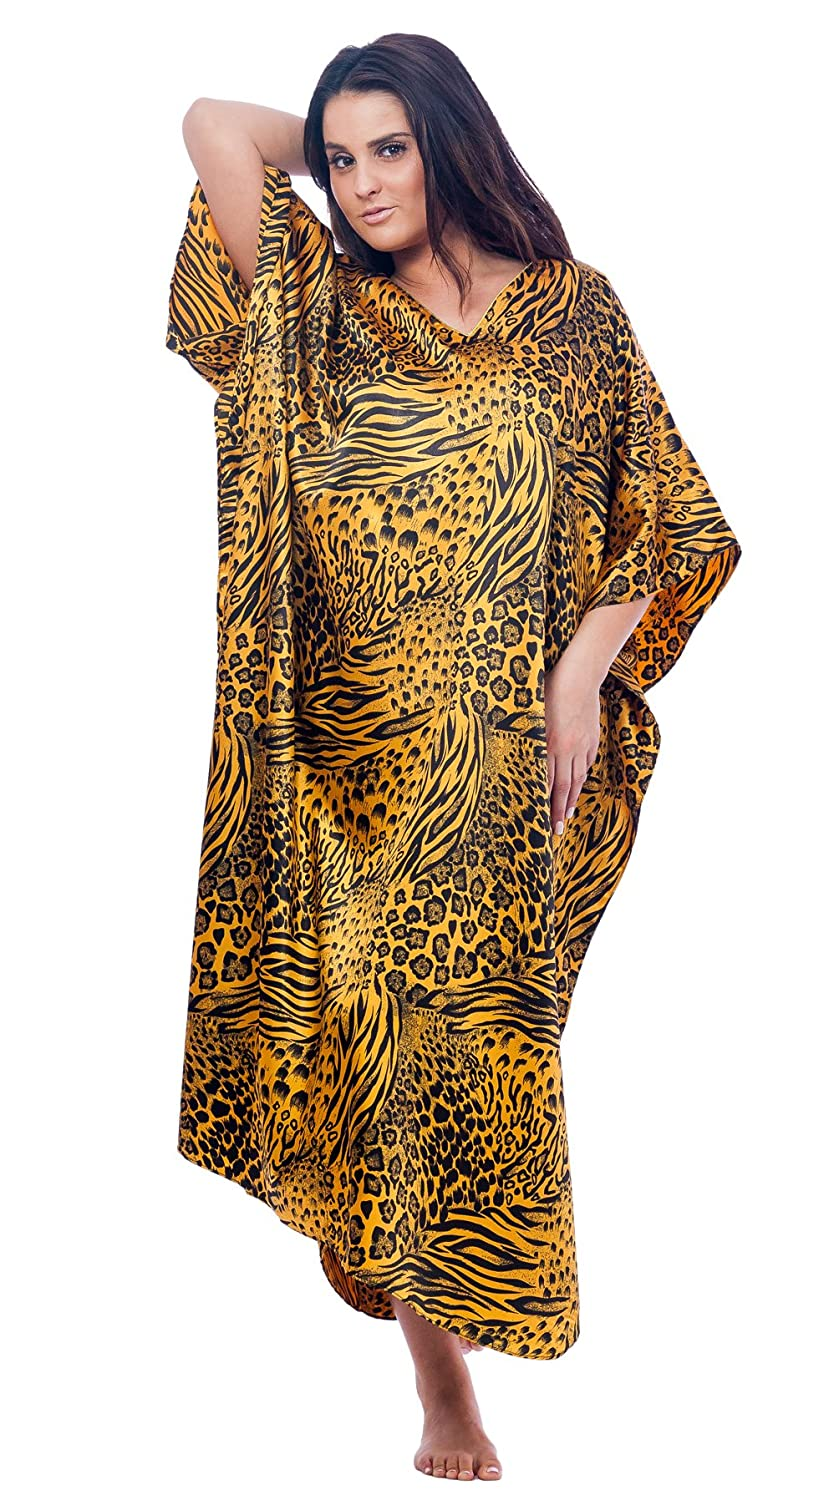 61854800f Up2date Fashion Caftan/Kaftan, Pretty Golden & Black Animal Print, Plus  Size, Style#Caf31 at Amazon Women's Clothing store: